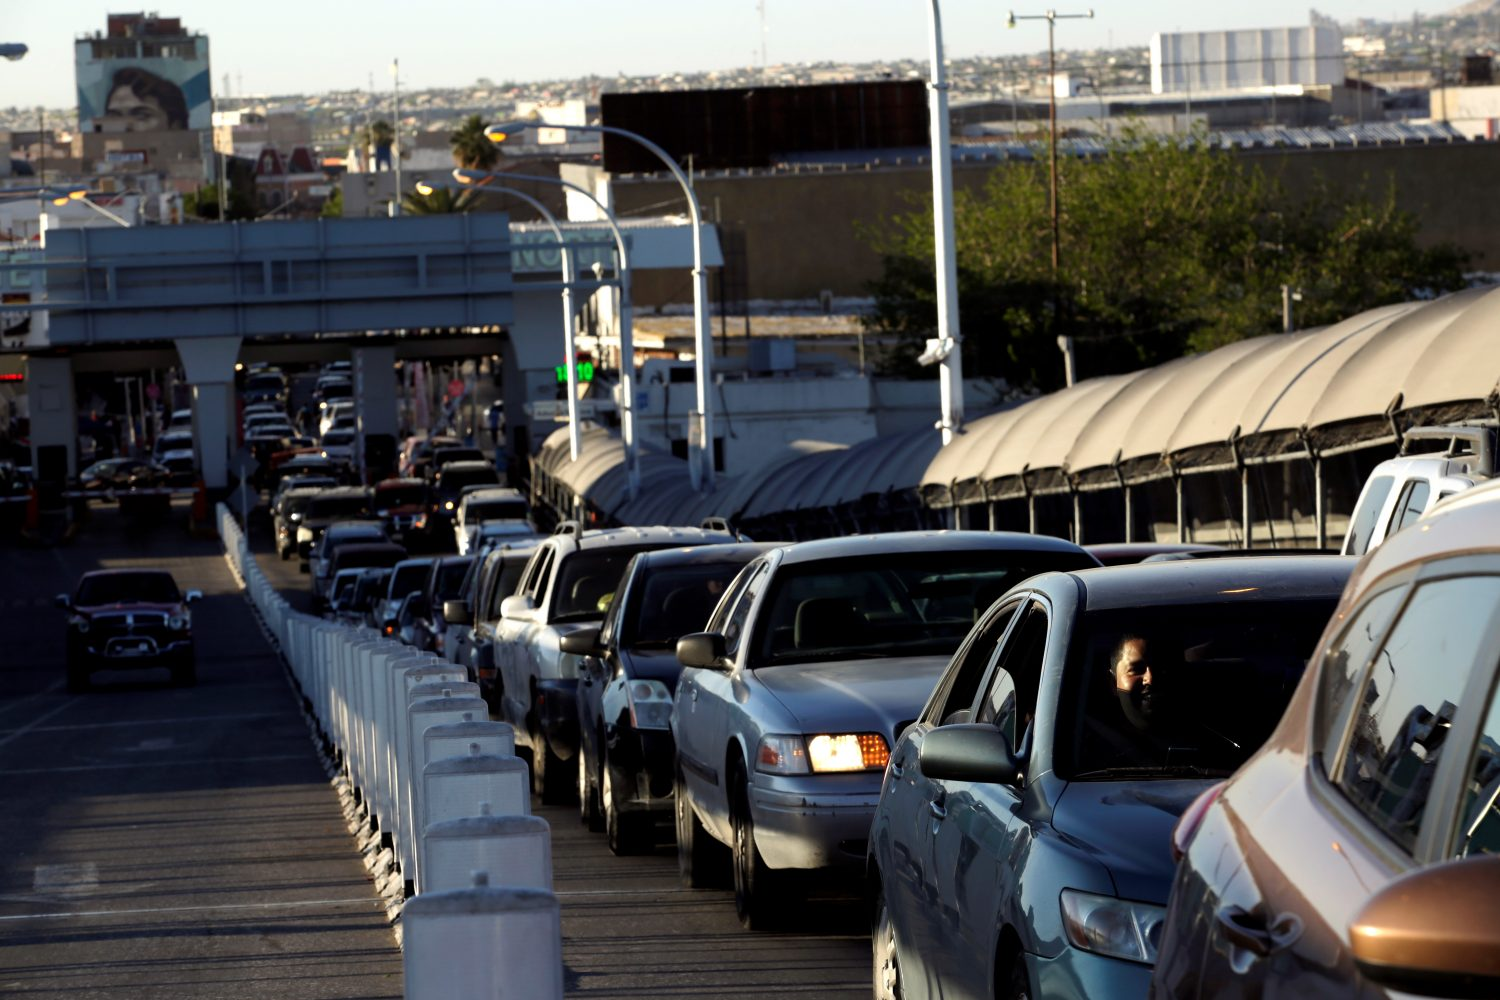 Drivers wait in line to cross to El Paso, Texas, on the international border crossing bridge Paso del Norte, in Ciudad Juarez, Mexico April 3, 2019. REUTERS/Jose Luis Gonzalez